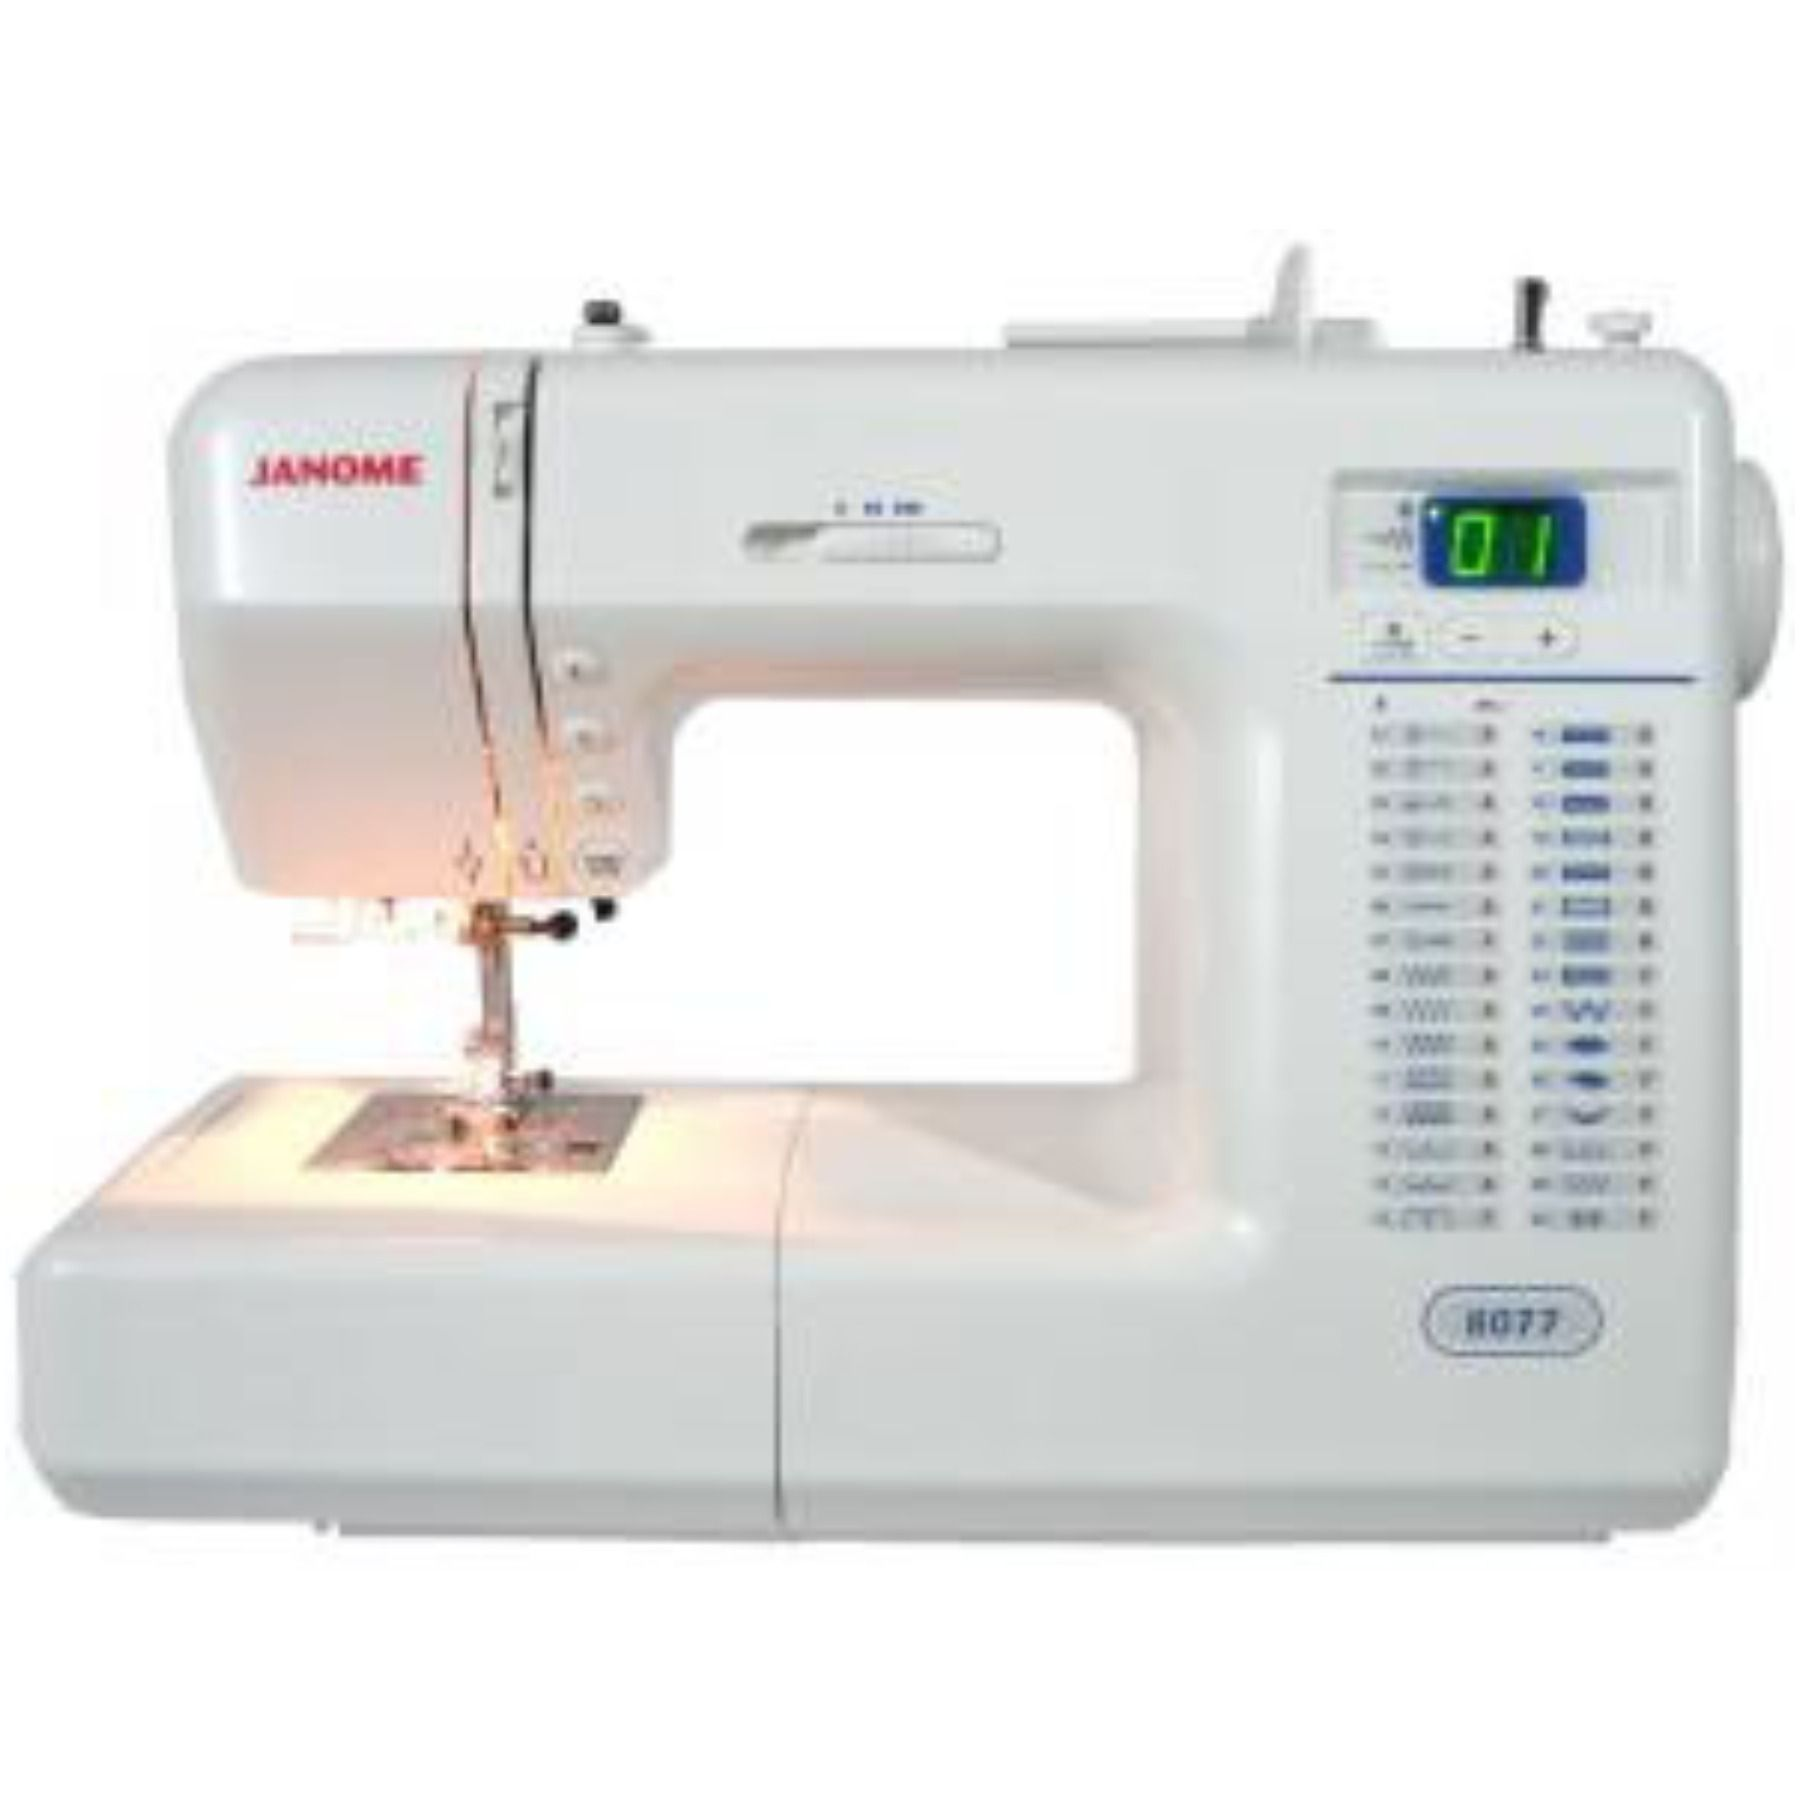 bonus quilt p with kit and machine quilting computerized janome sewing b s ebay